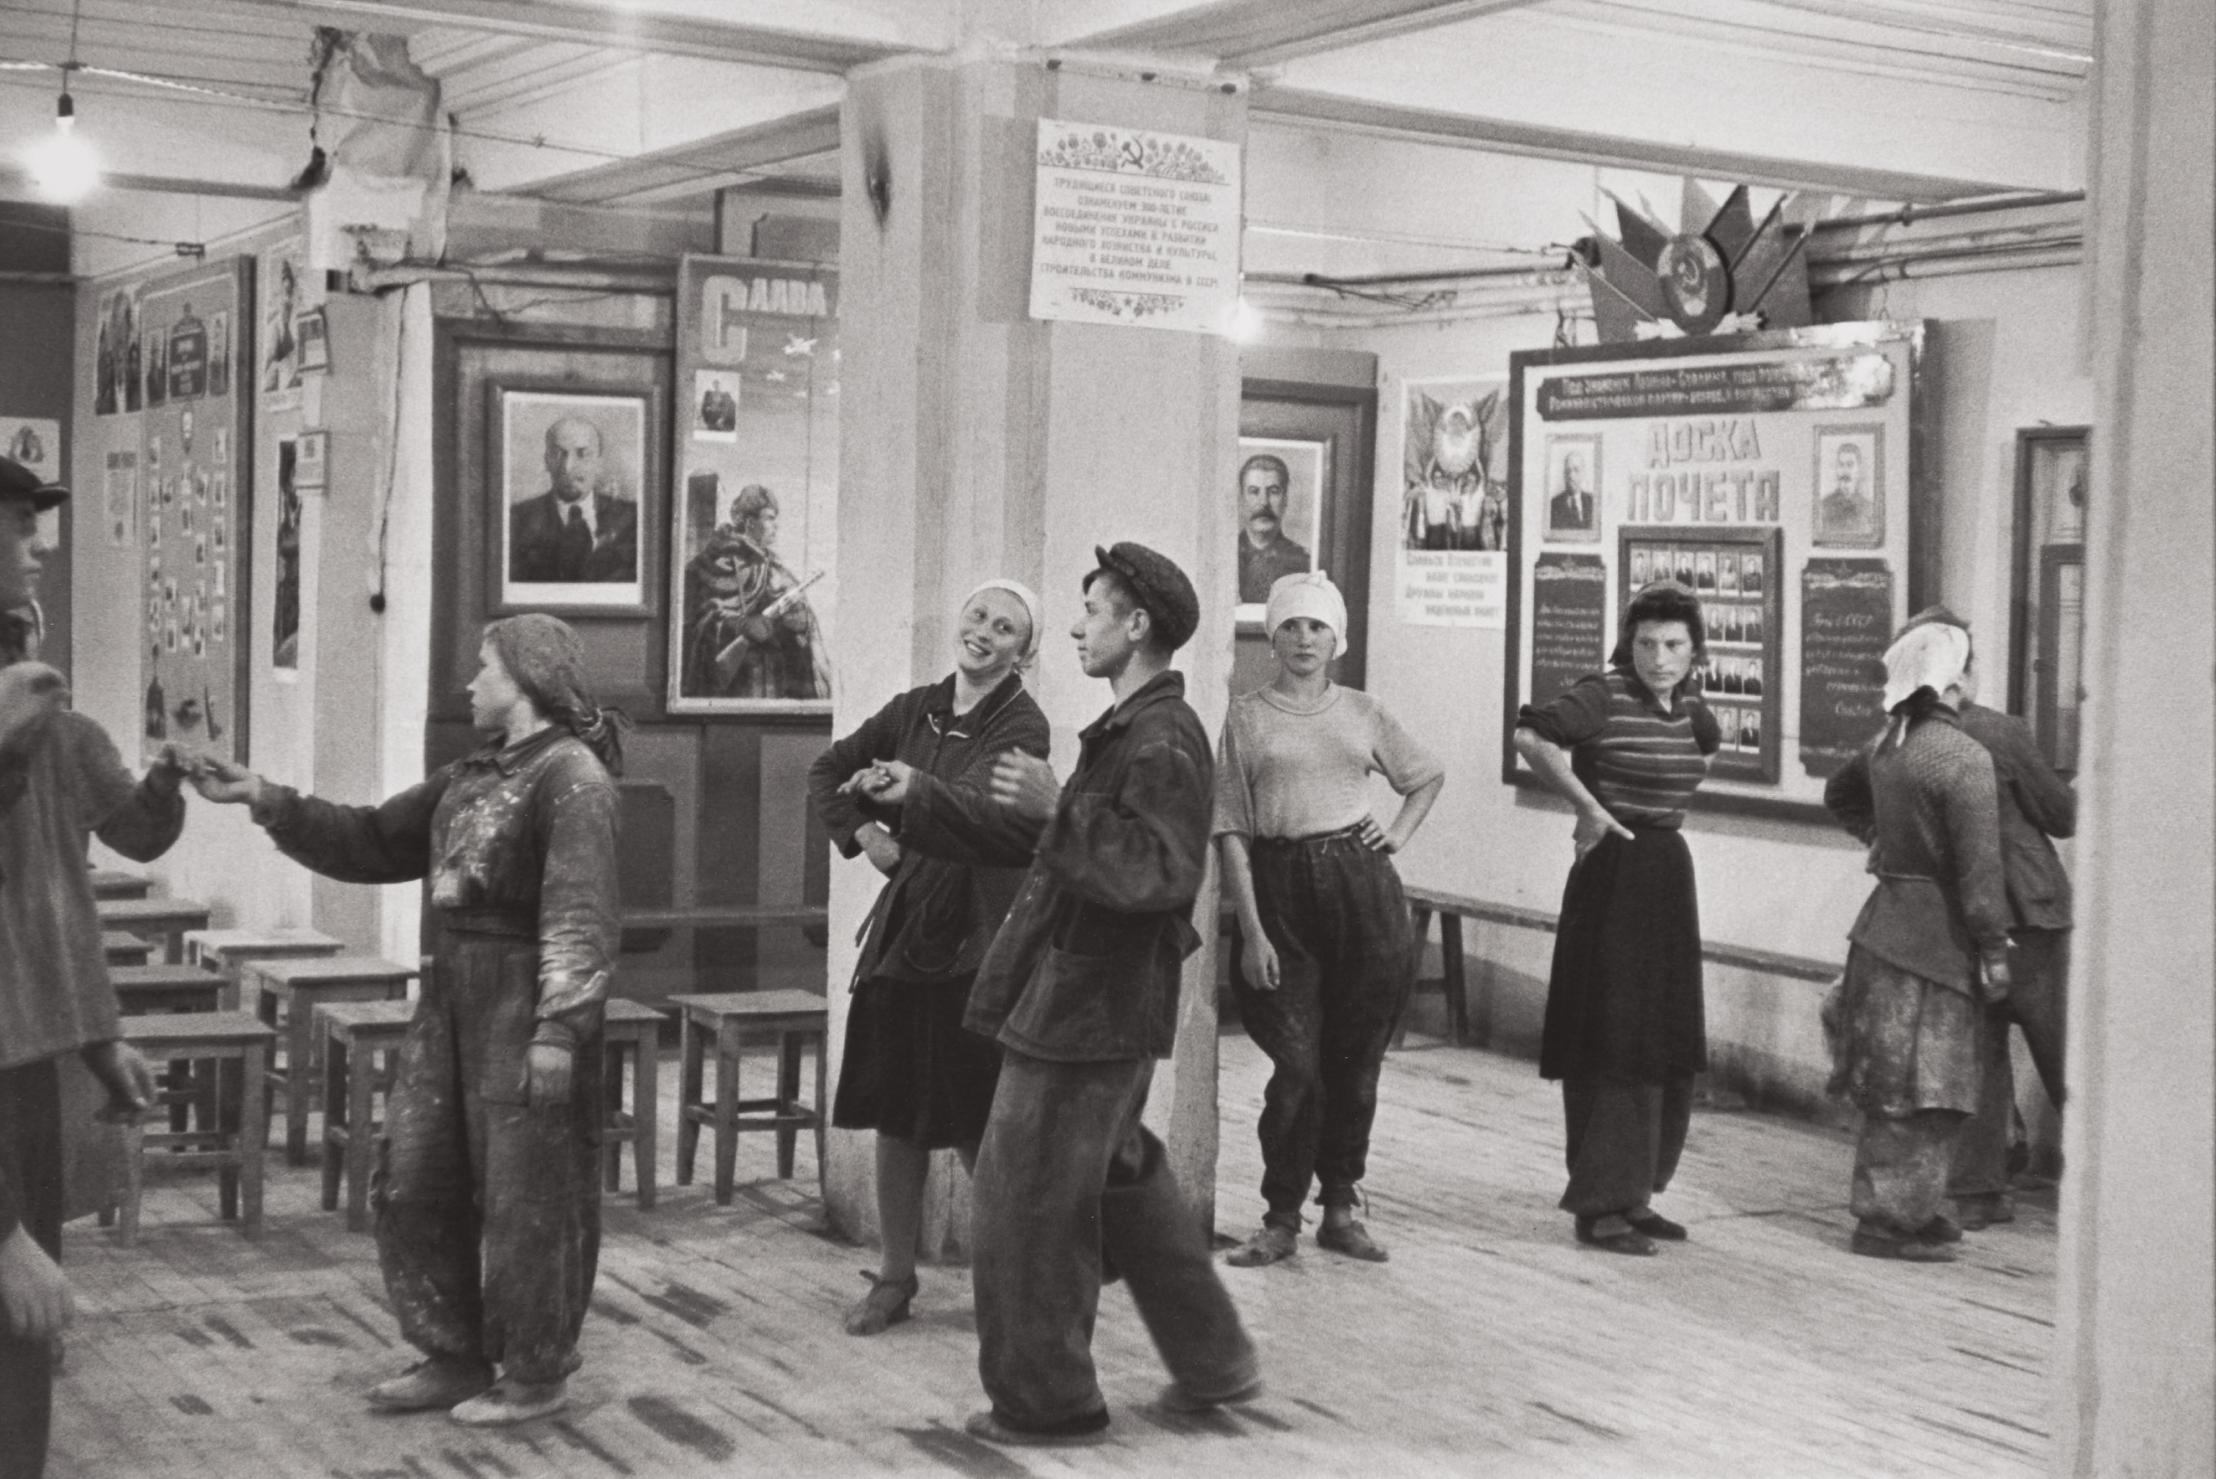 Henri Cartier-Bresson-Canteen For Workers Building The Hotel Metropol, Moscow, Ussr-1954